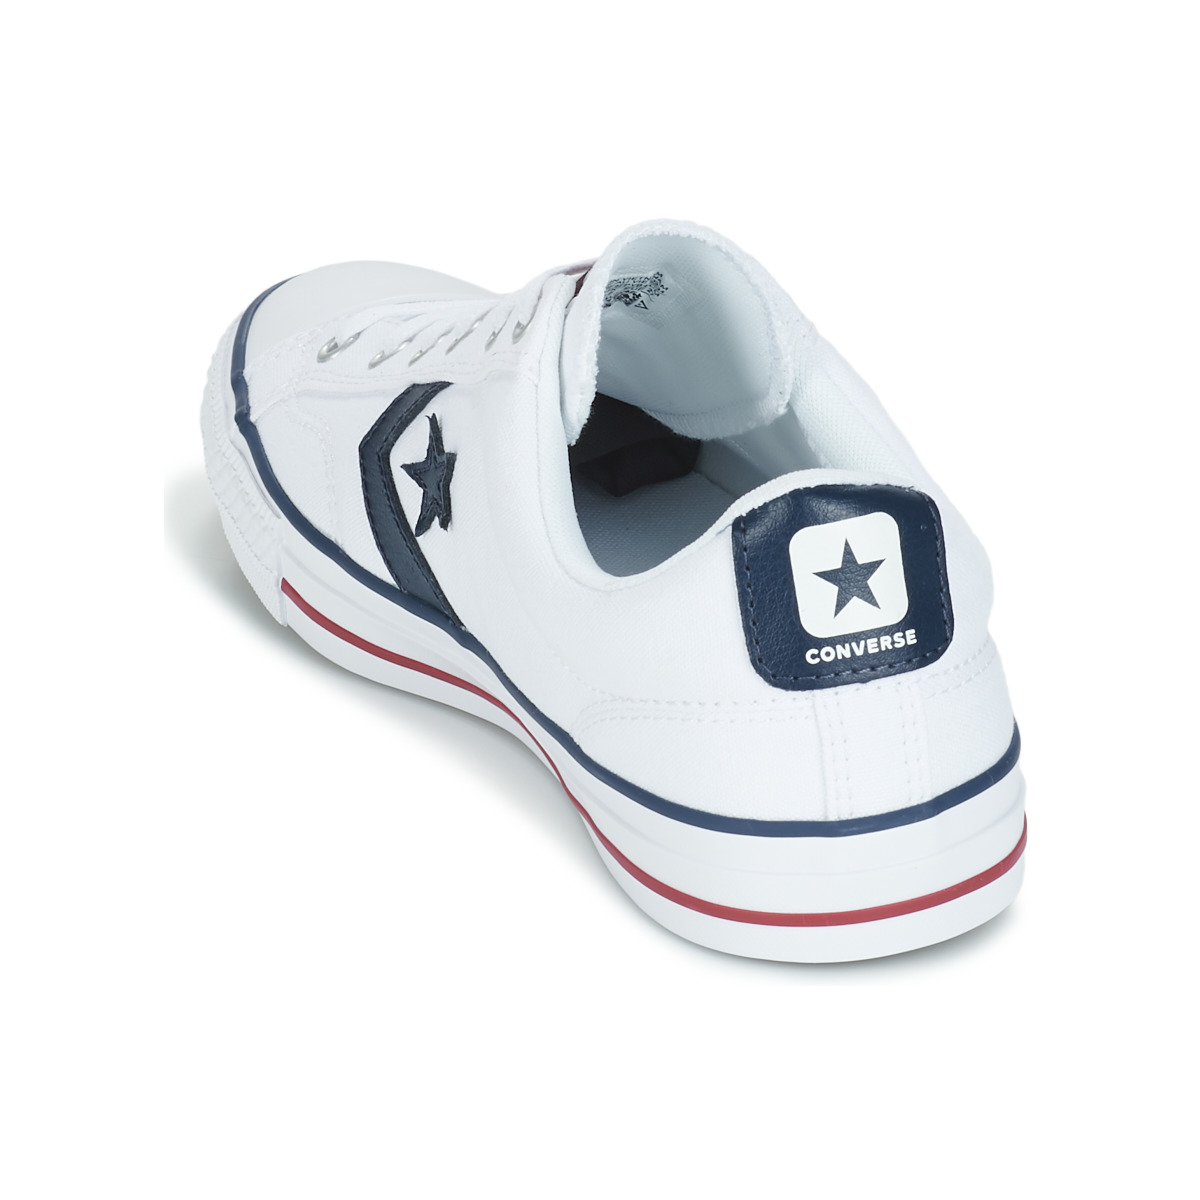 80%OFF Converse STAR PLAYER OX White Shoes Low top trainers